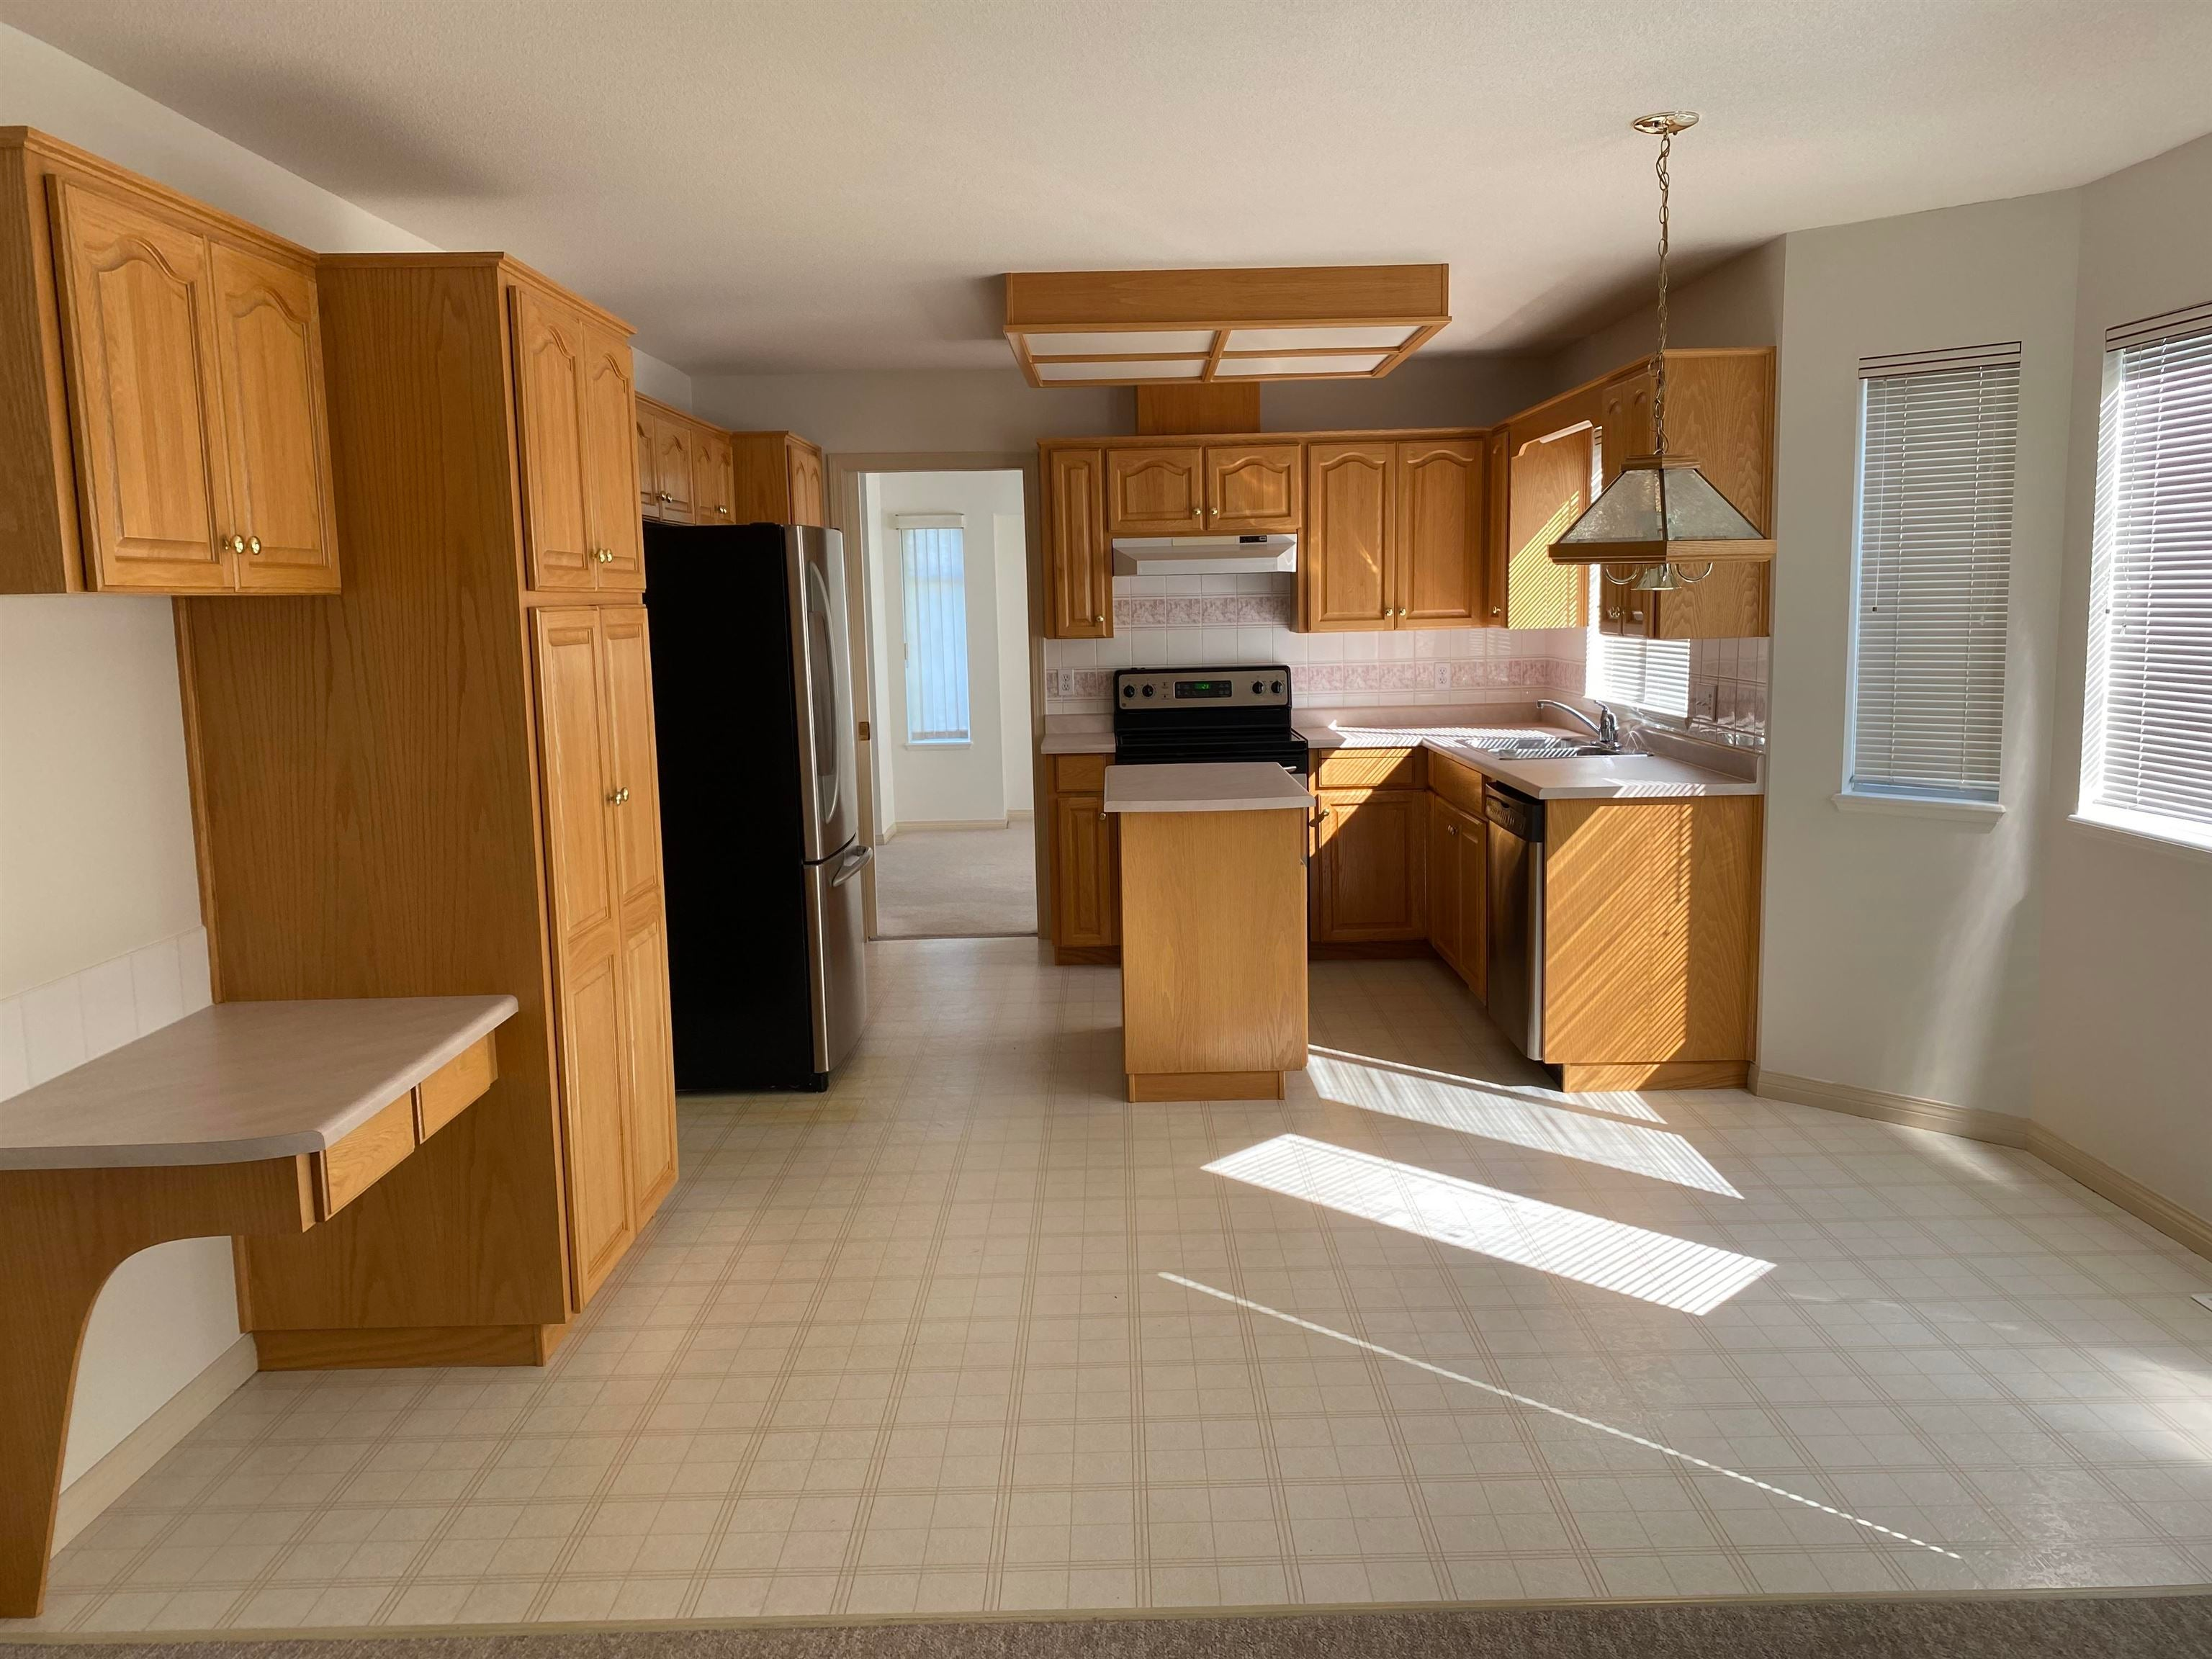 19950 48A AVENUE - Langley City House/Single Family for sale, 4 Bedrooms (R2615832) - #5